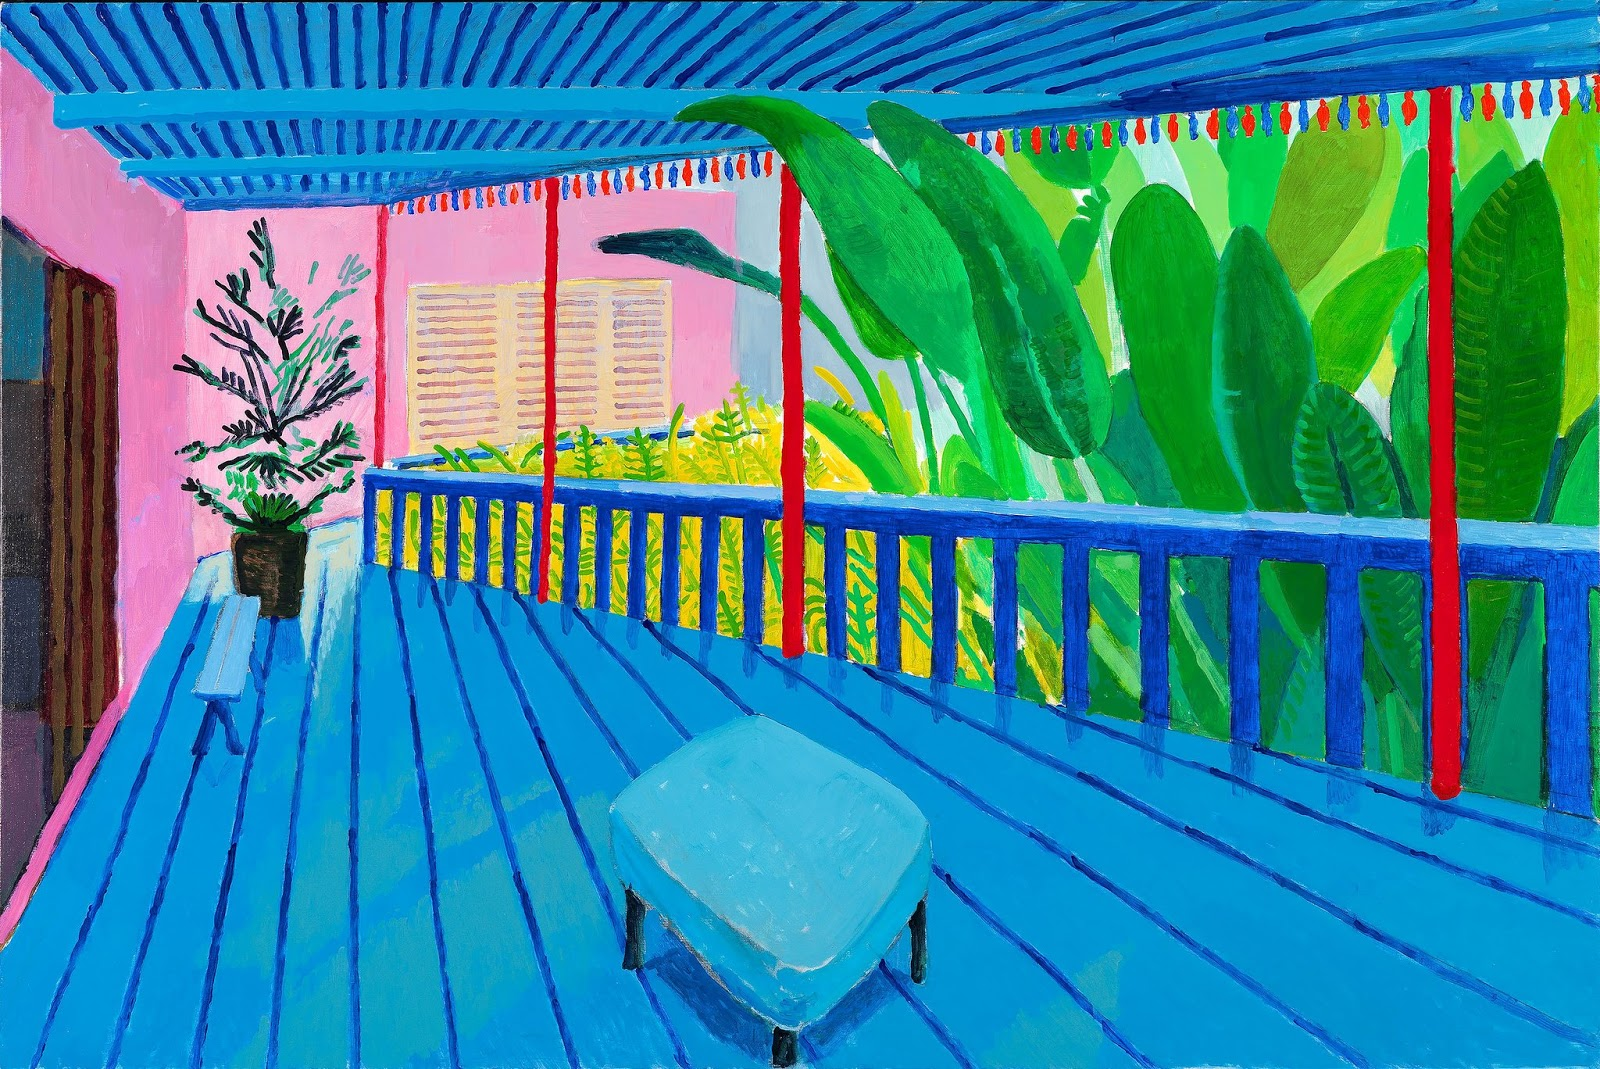 david hockney at the met